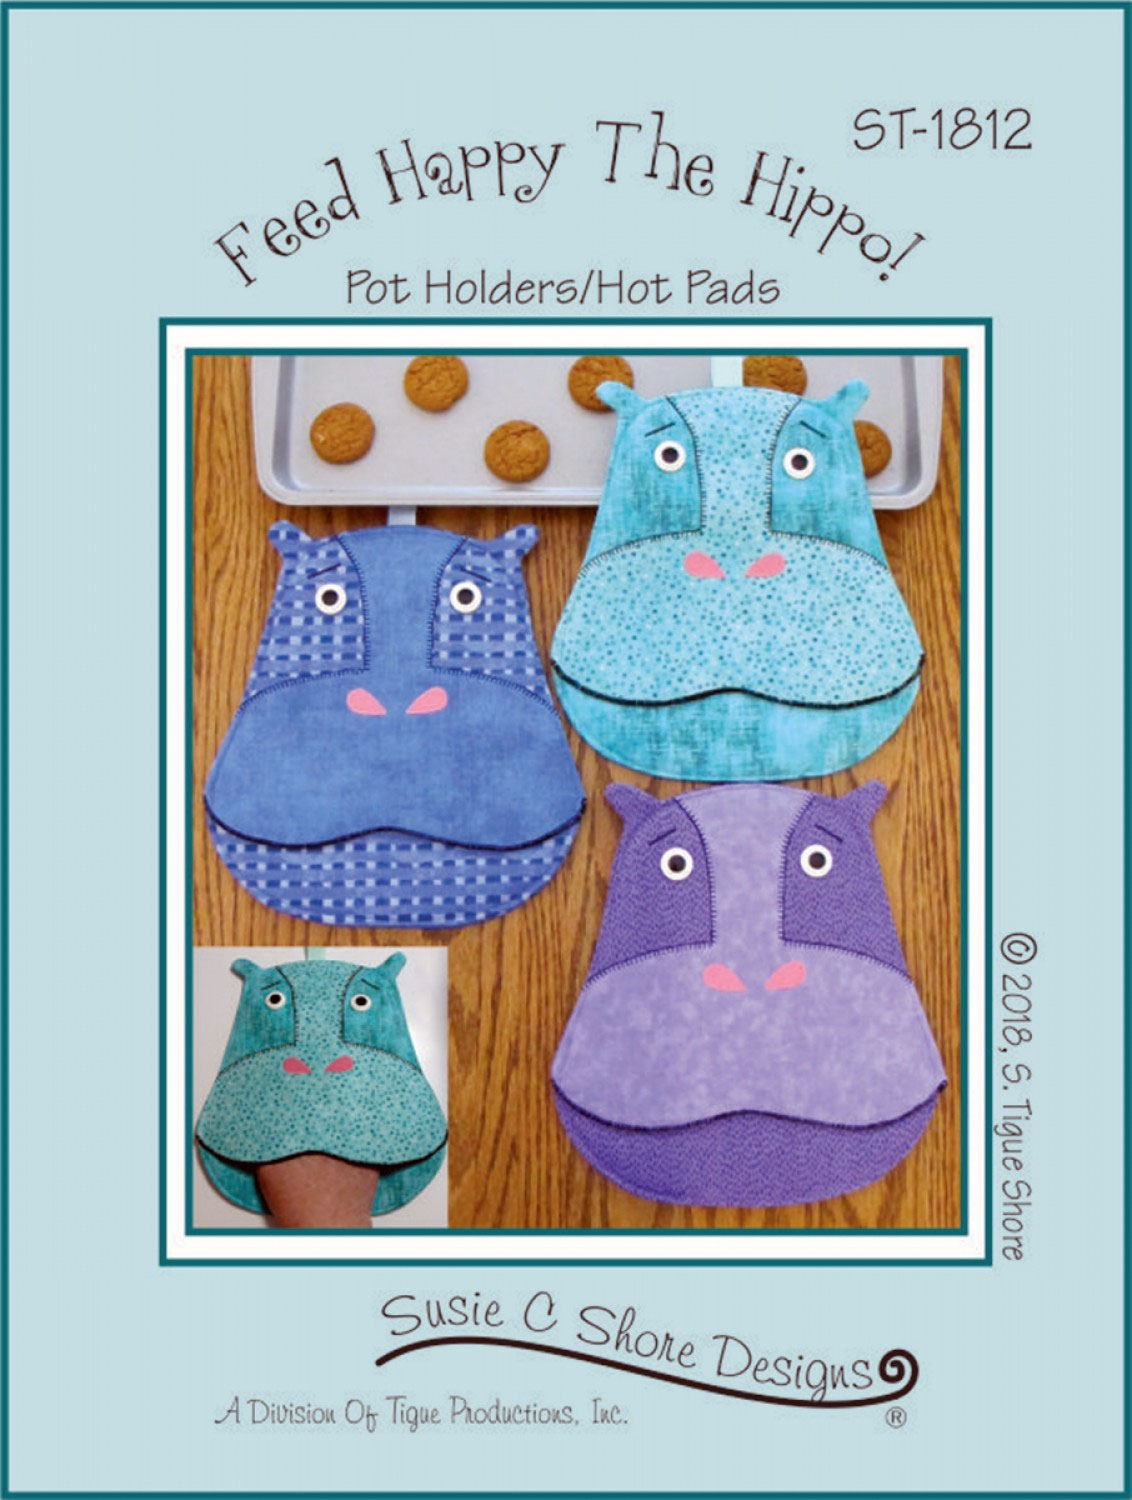 Feed-Happy-The-Hippo-sewing-pattern-Susie-C-Shore-front